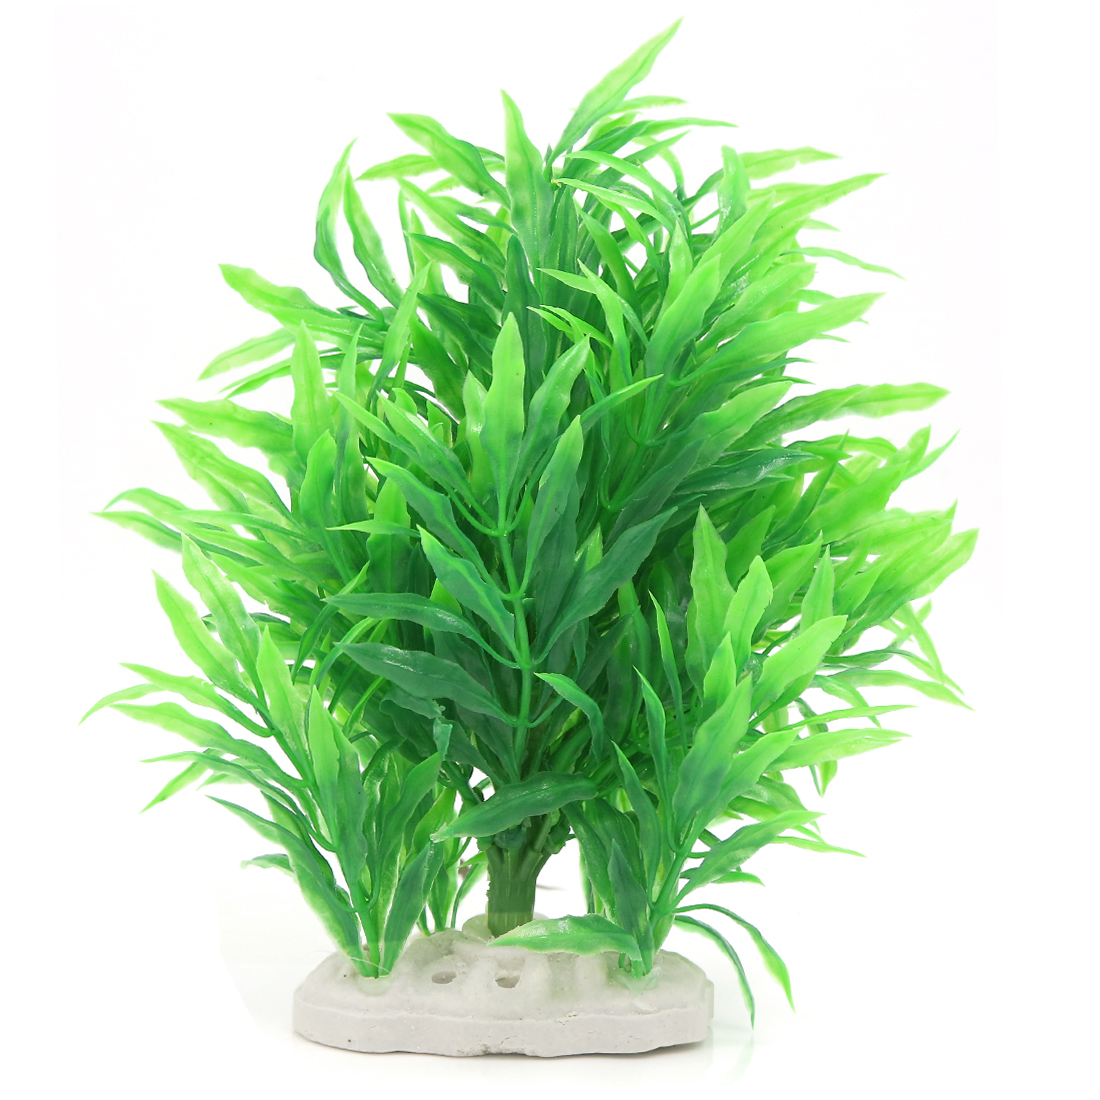 Decorative Emulational Grass Plant Green for Fish Tank